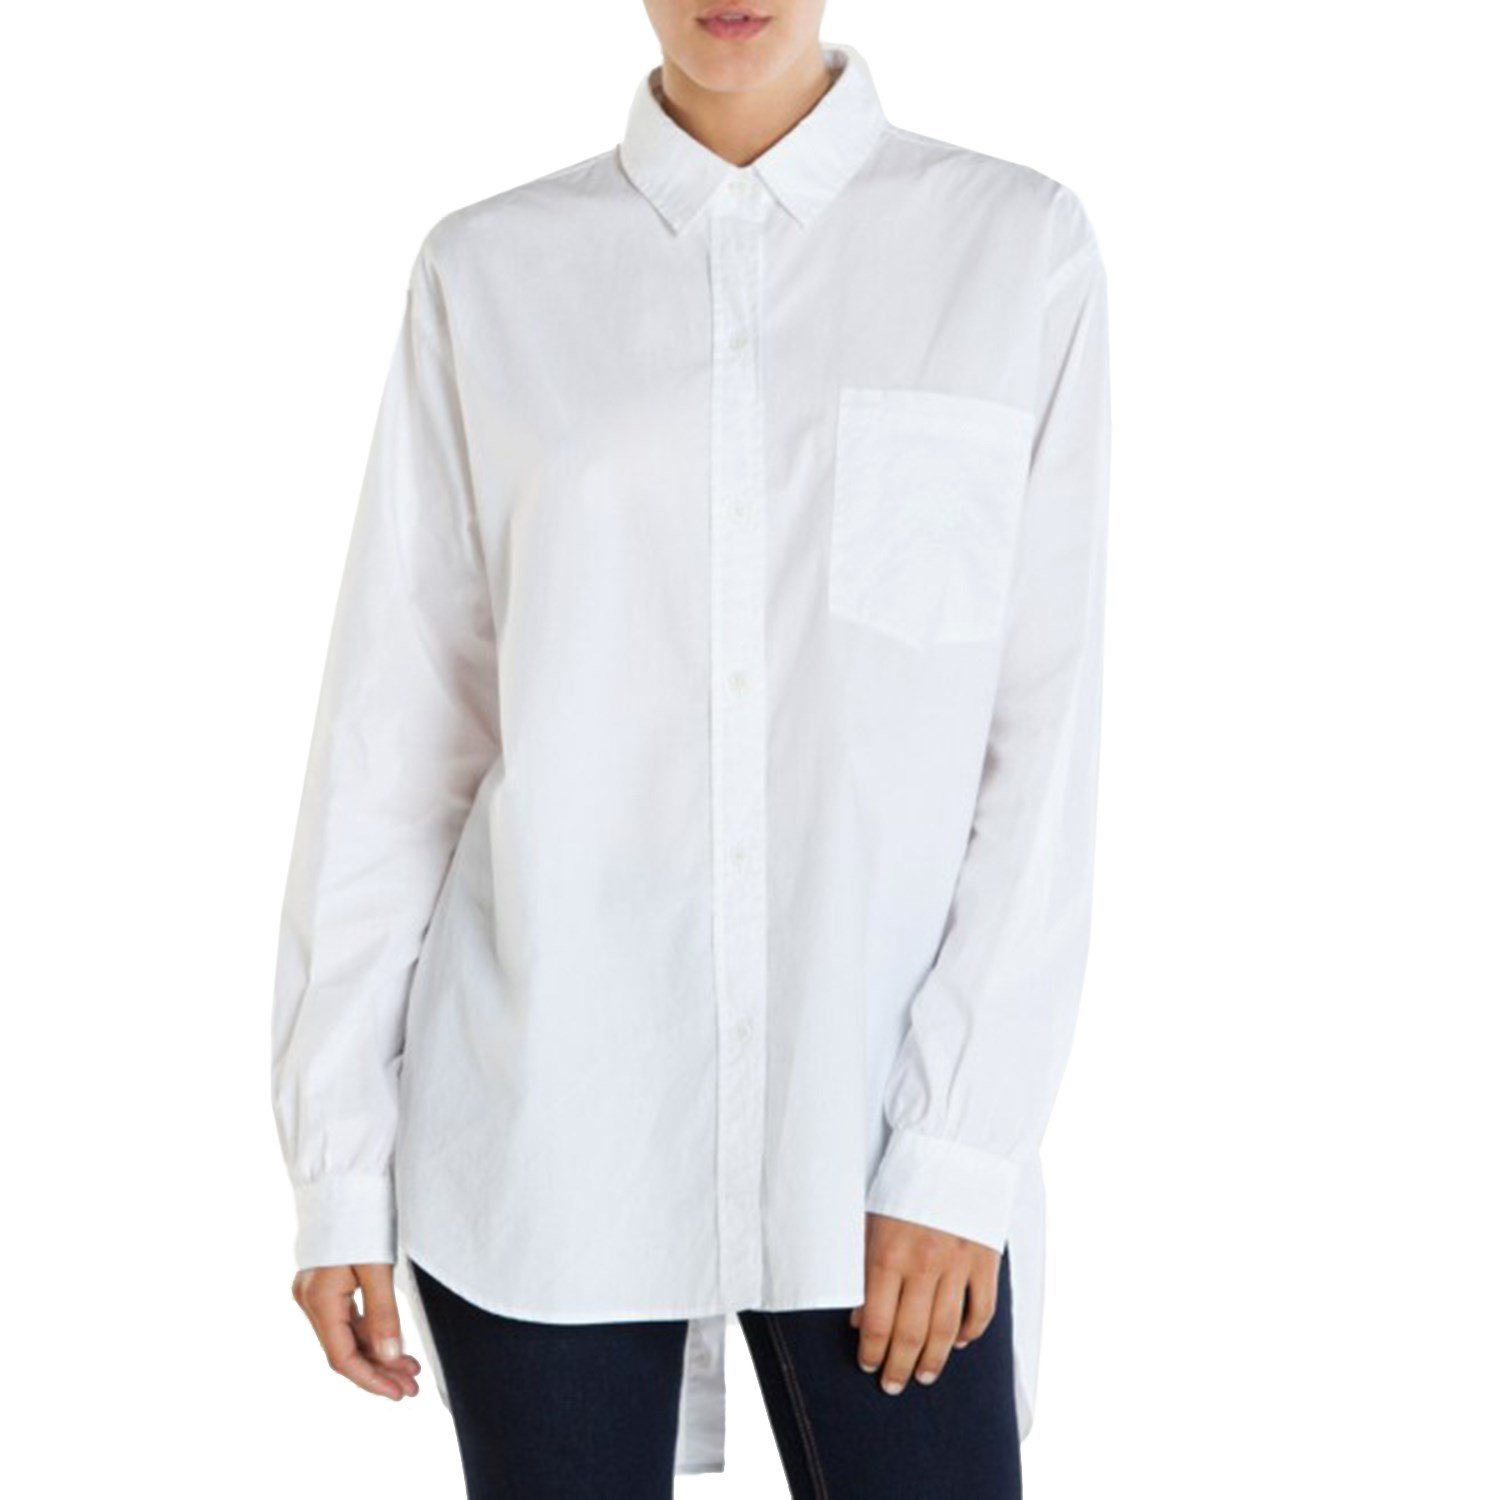 White long sleeve blouse womens trendy clothes for Women s button down dress shirts